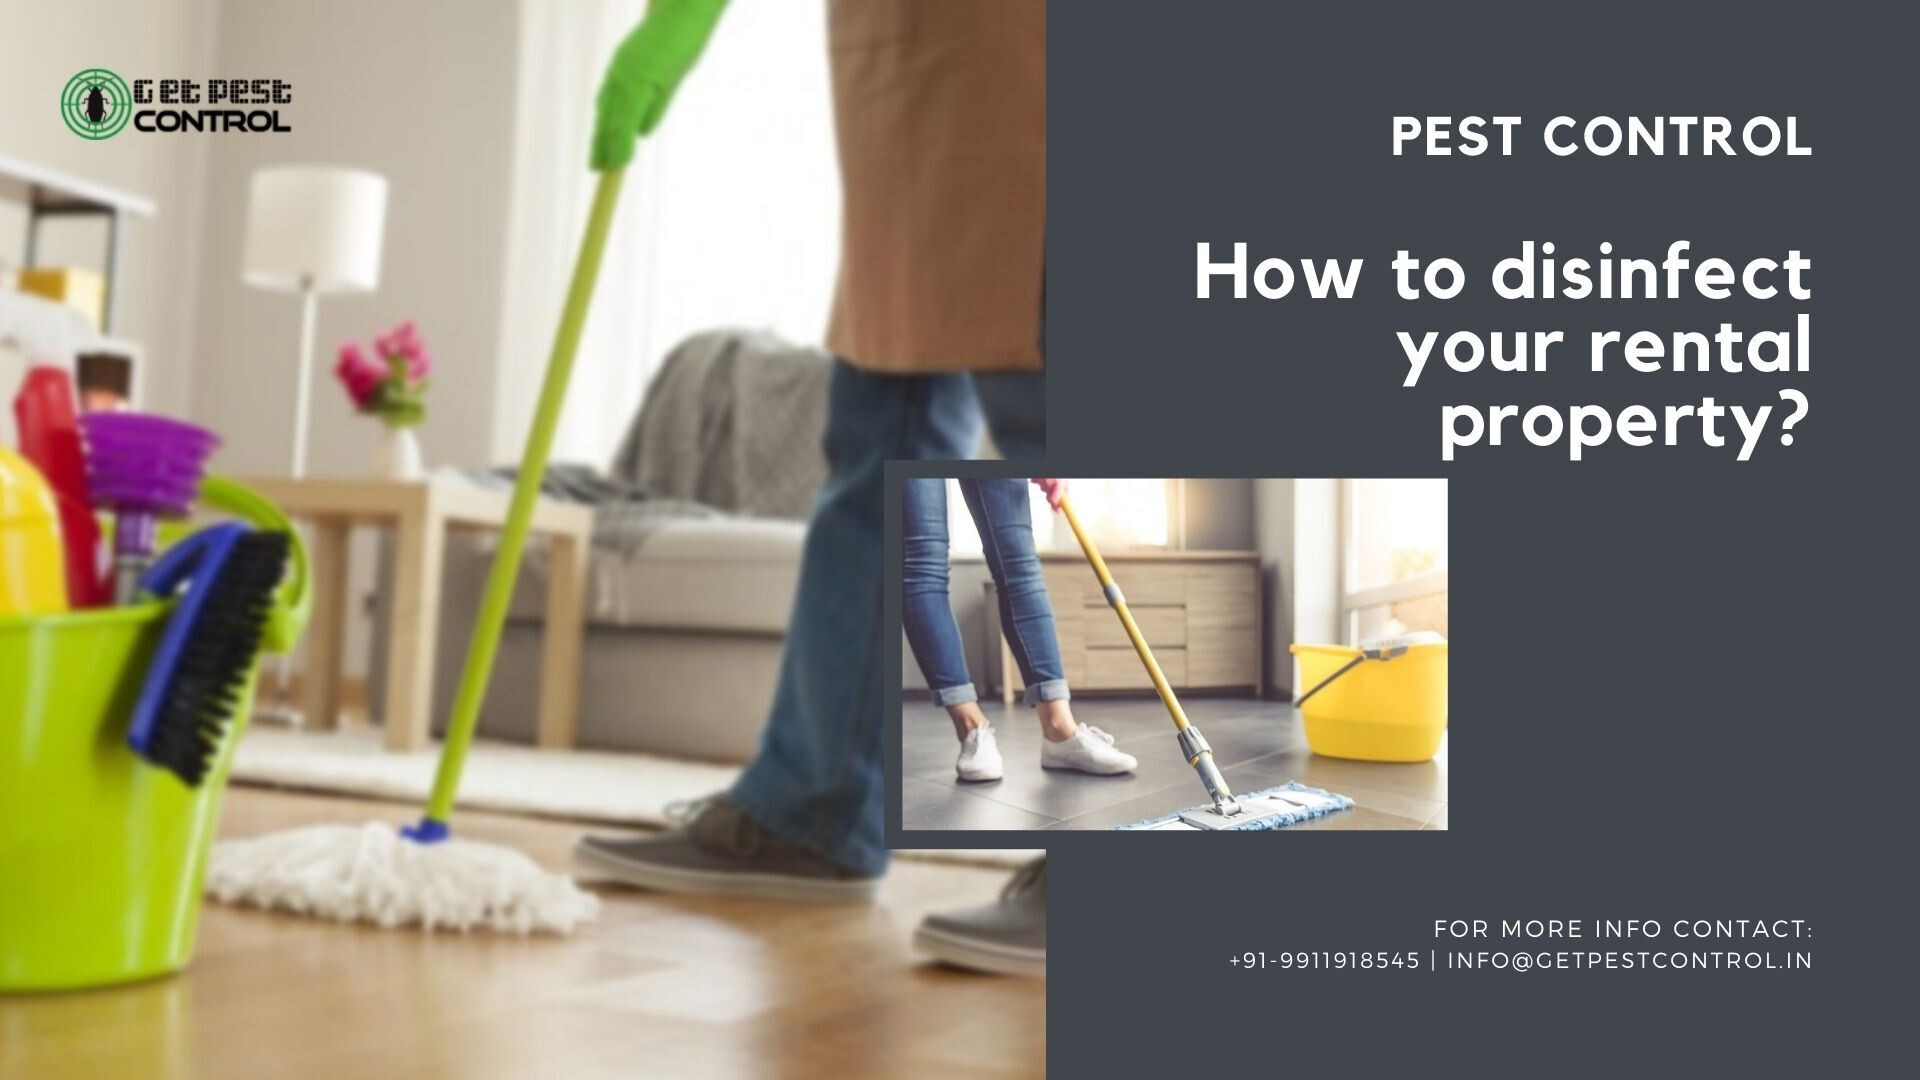 How to disinfect your rental property?